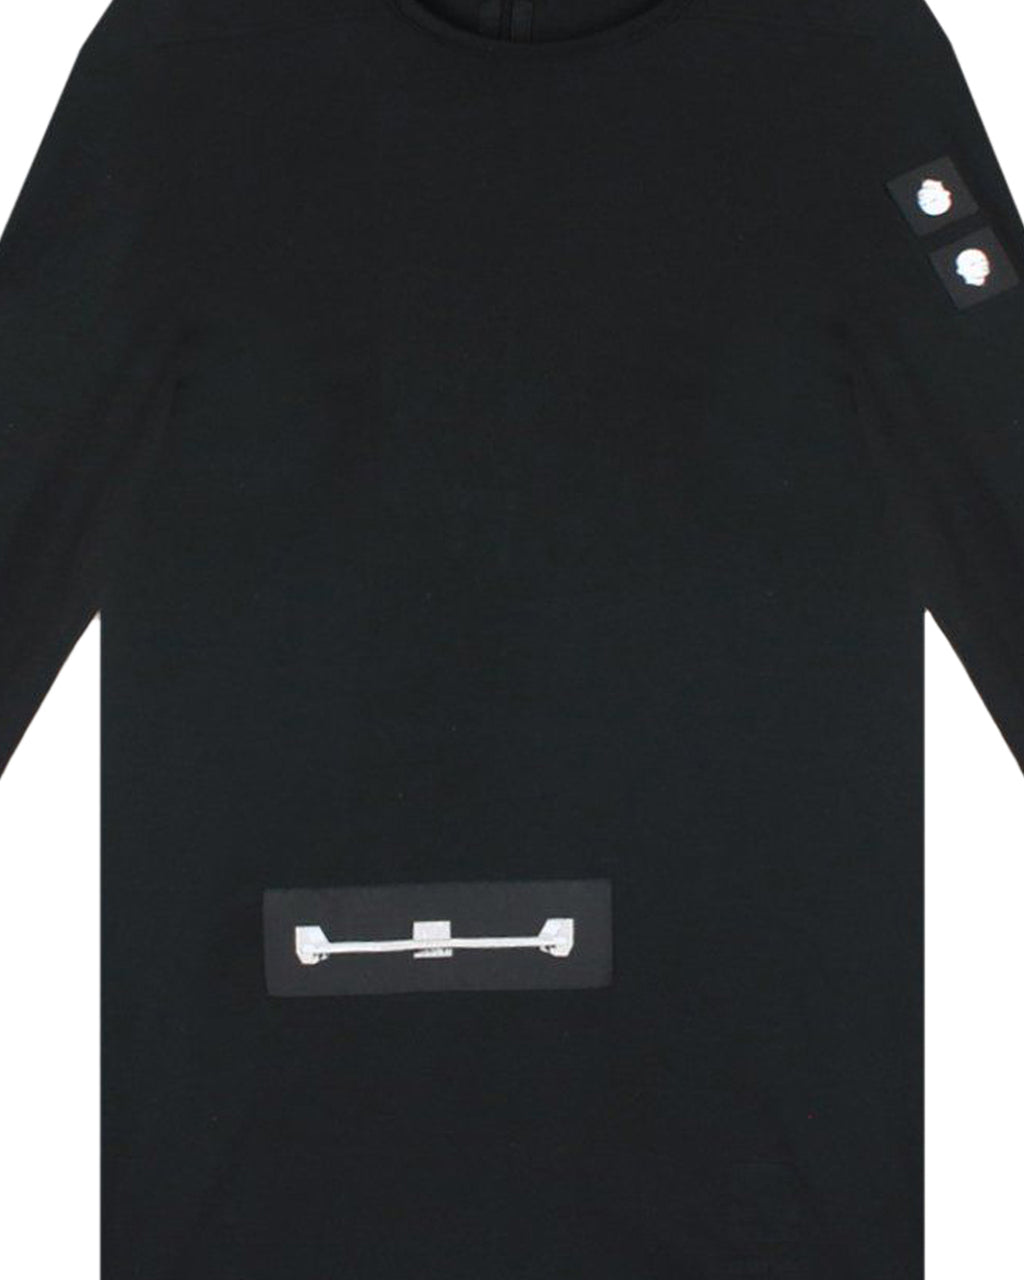 Black Long Sleeve Level T-Shirt